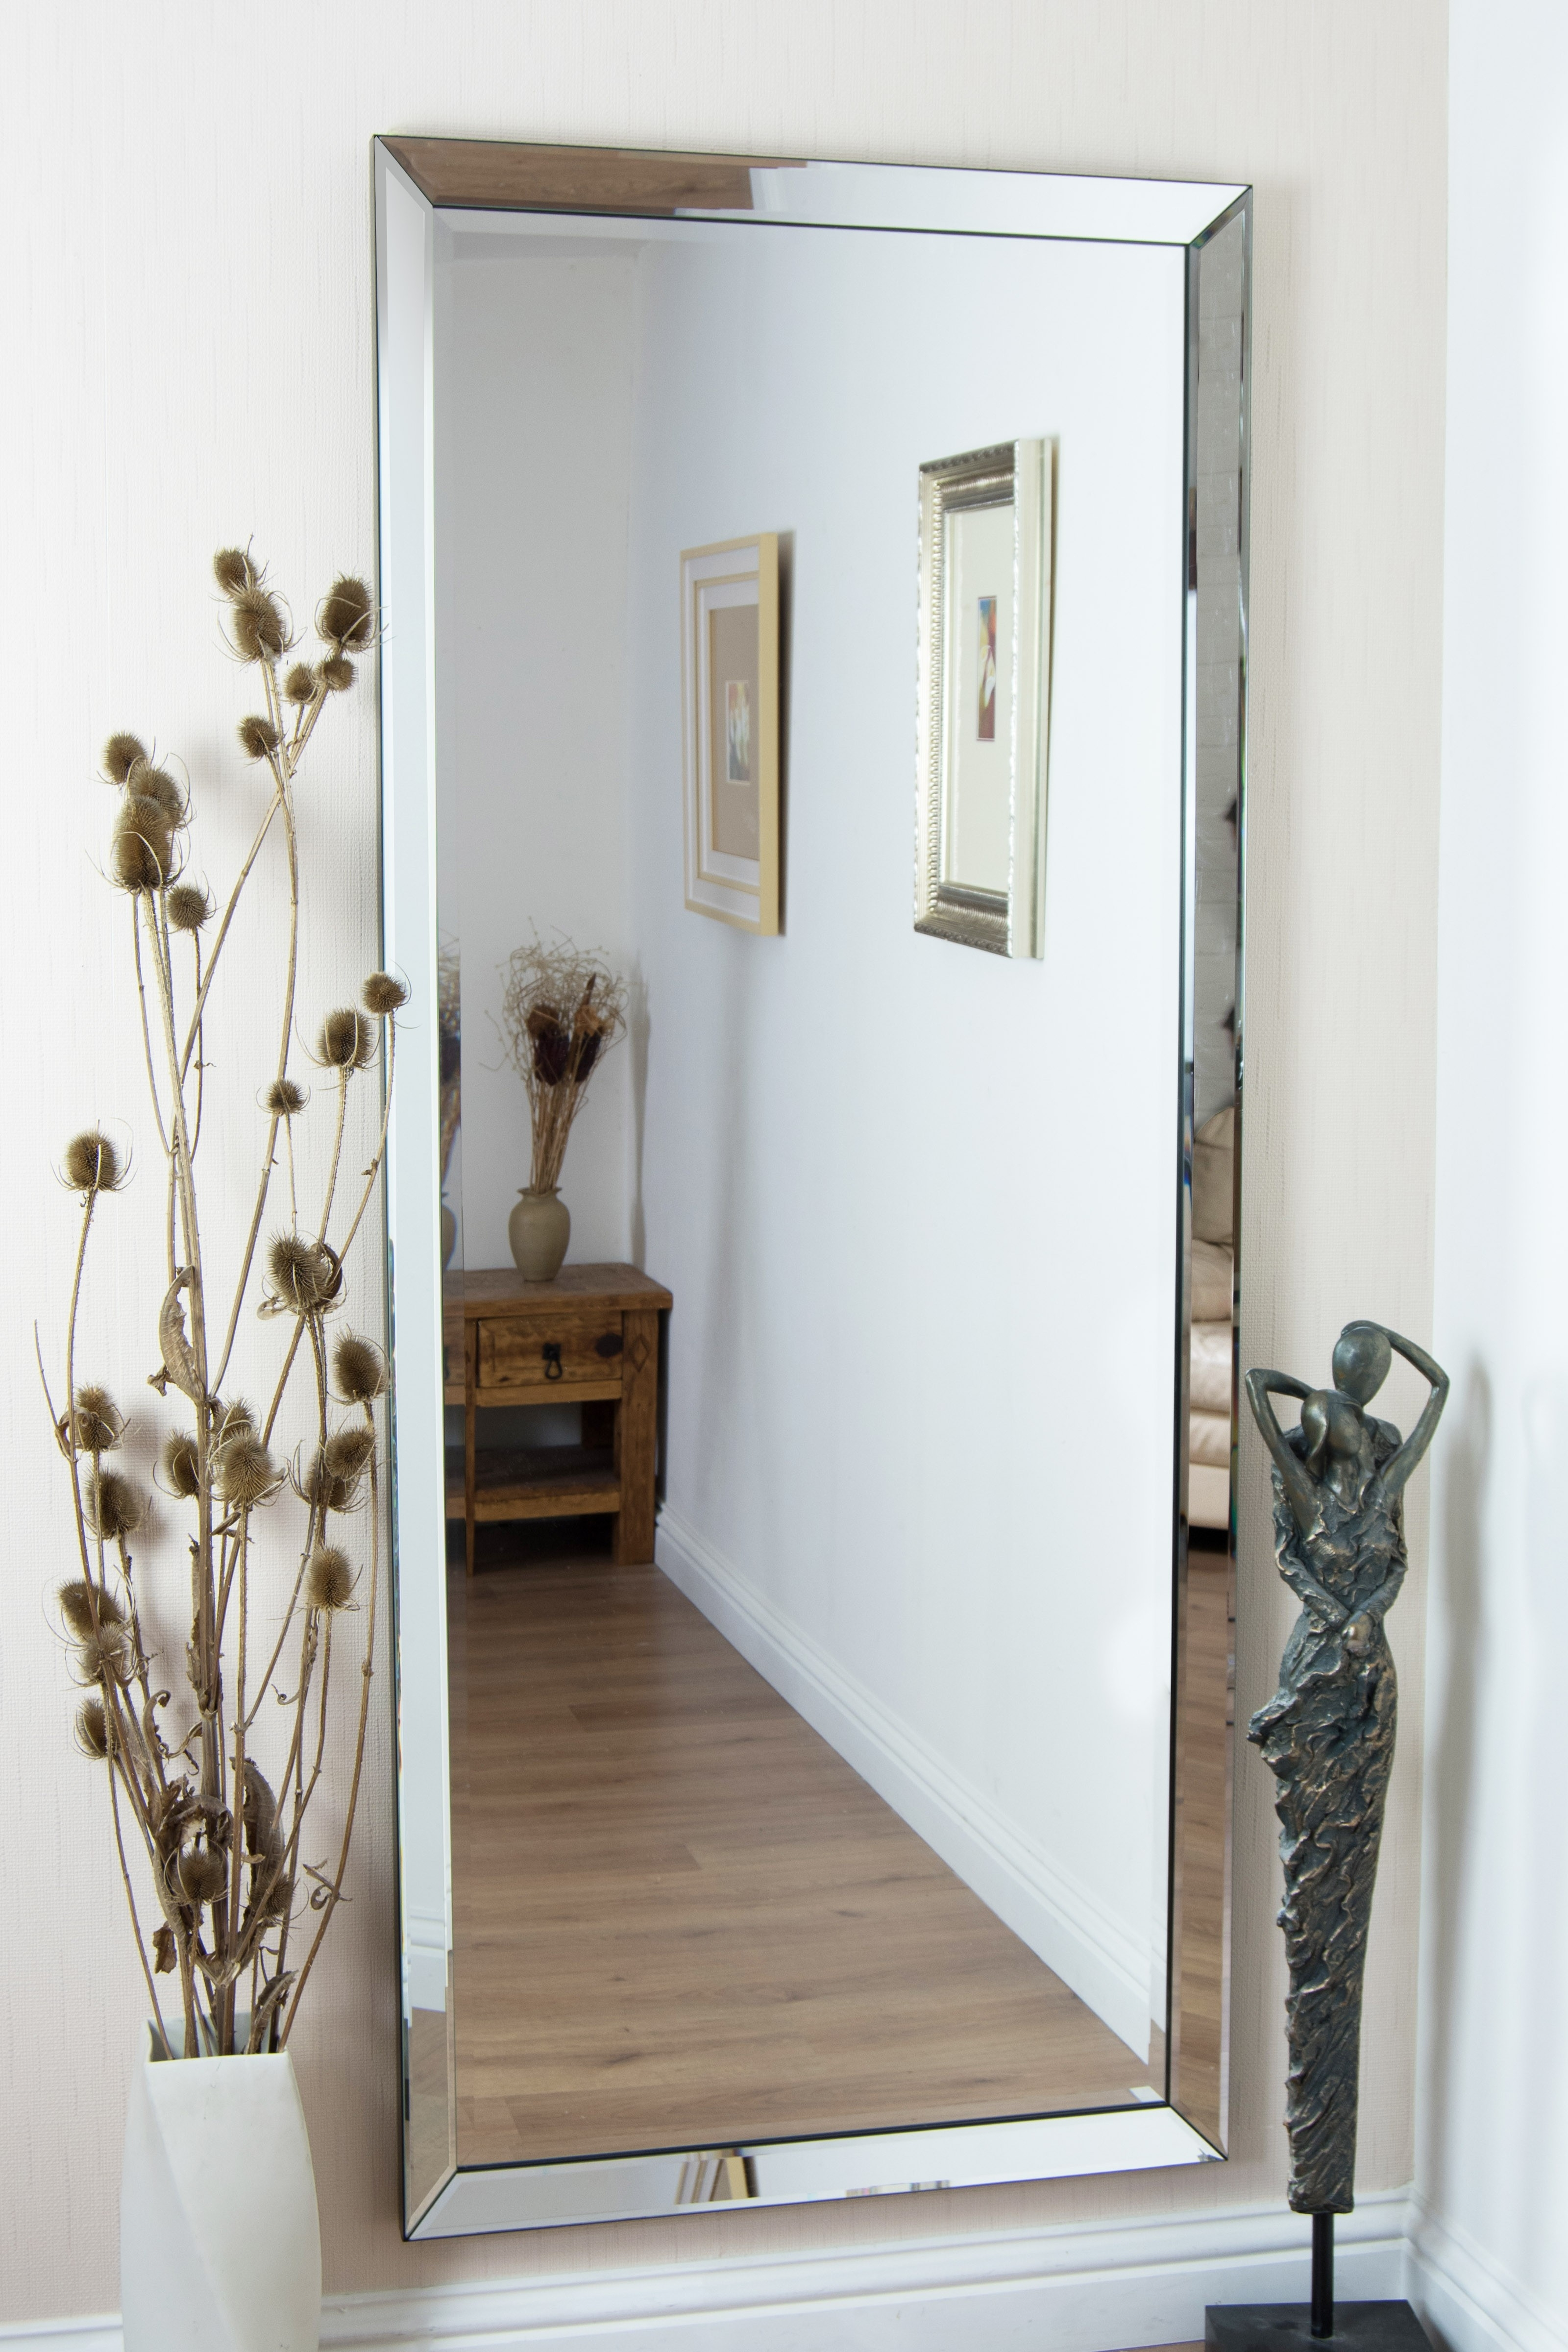 Mirroroutlet Shop For Large Mirrors Wall Mirrors Free Delivery Throughout Long Narrow Mirrors For Sale (Image 11 of 15)